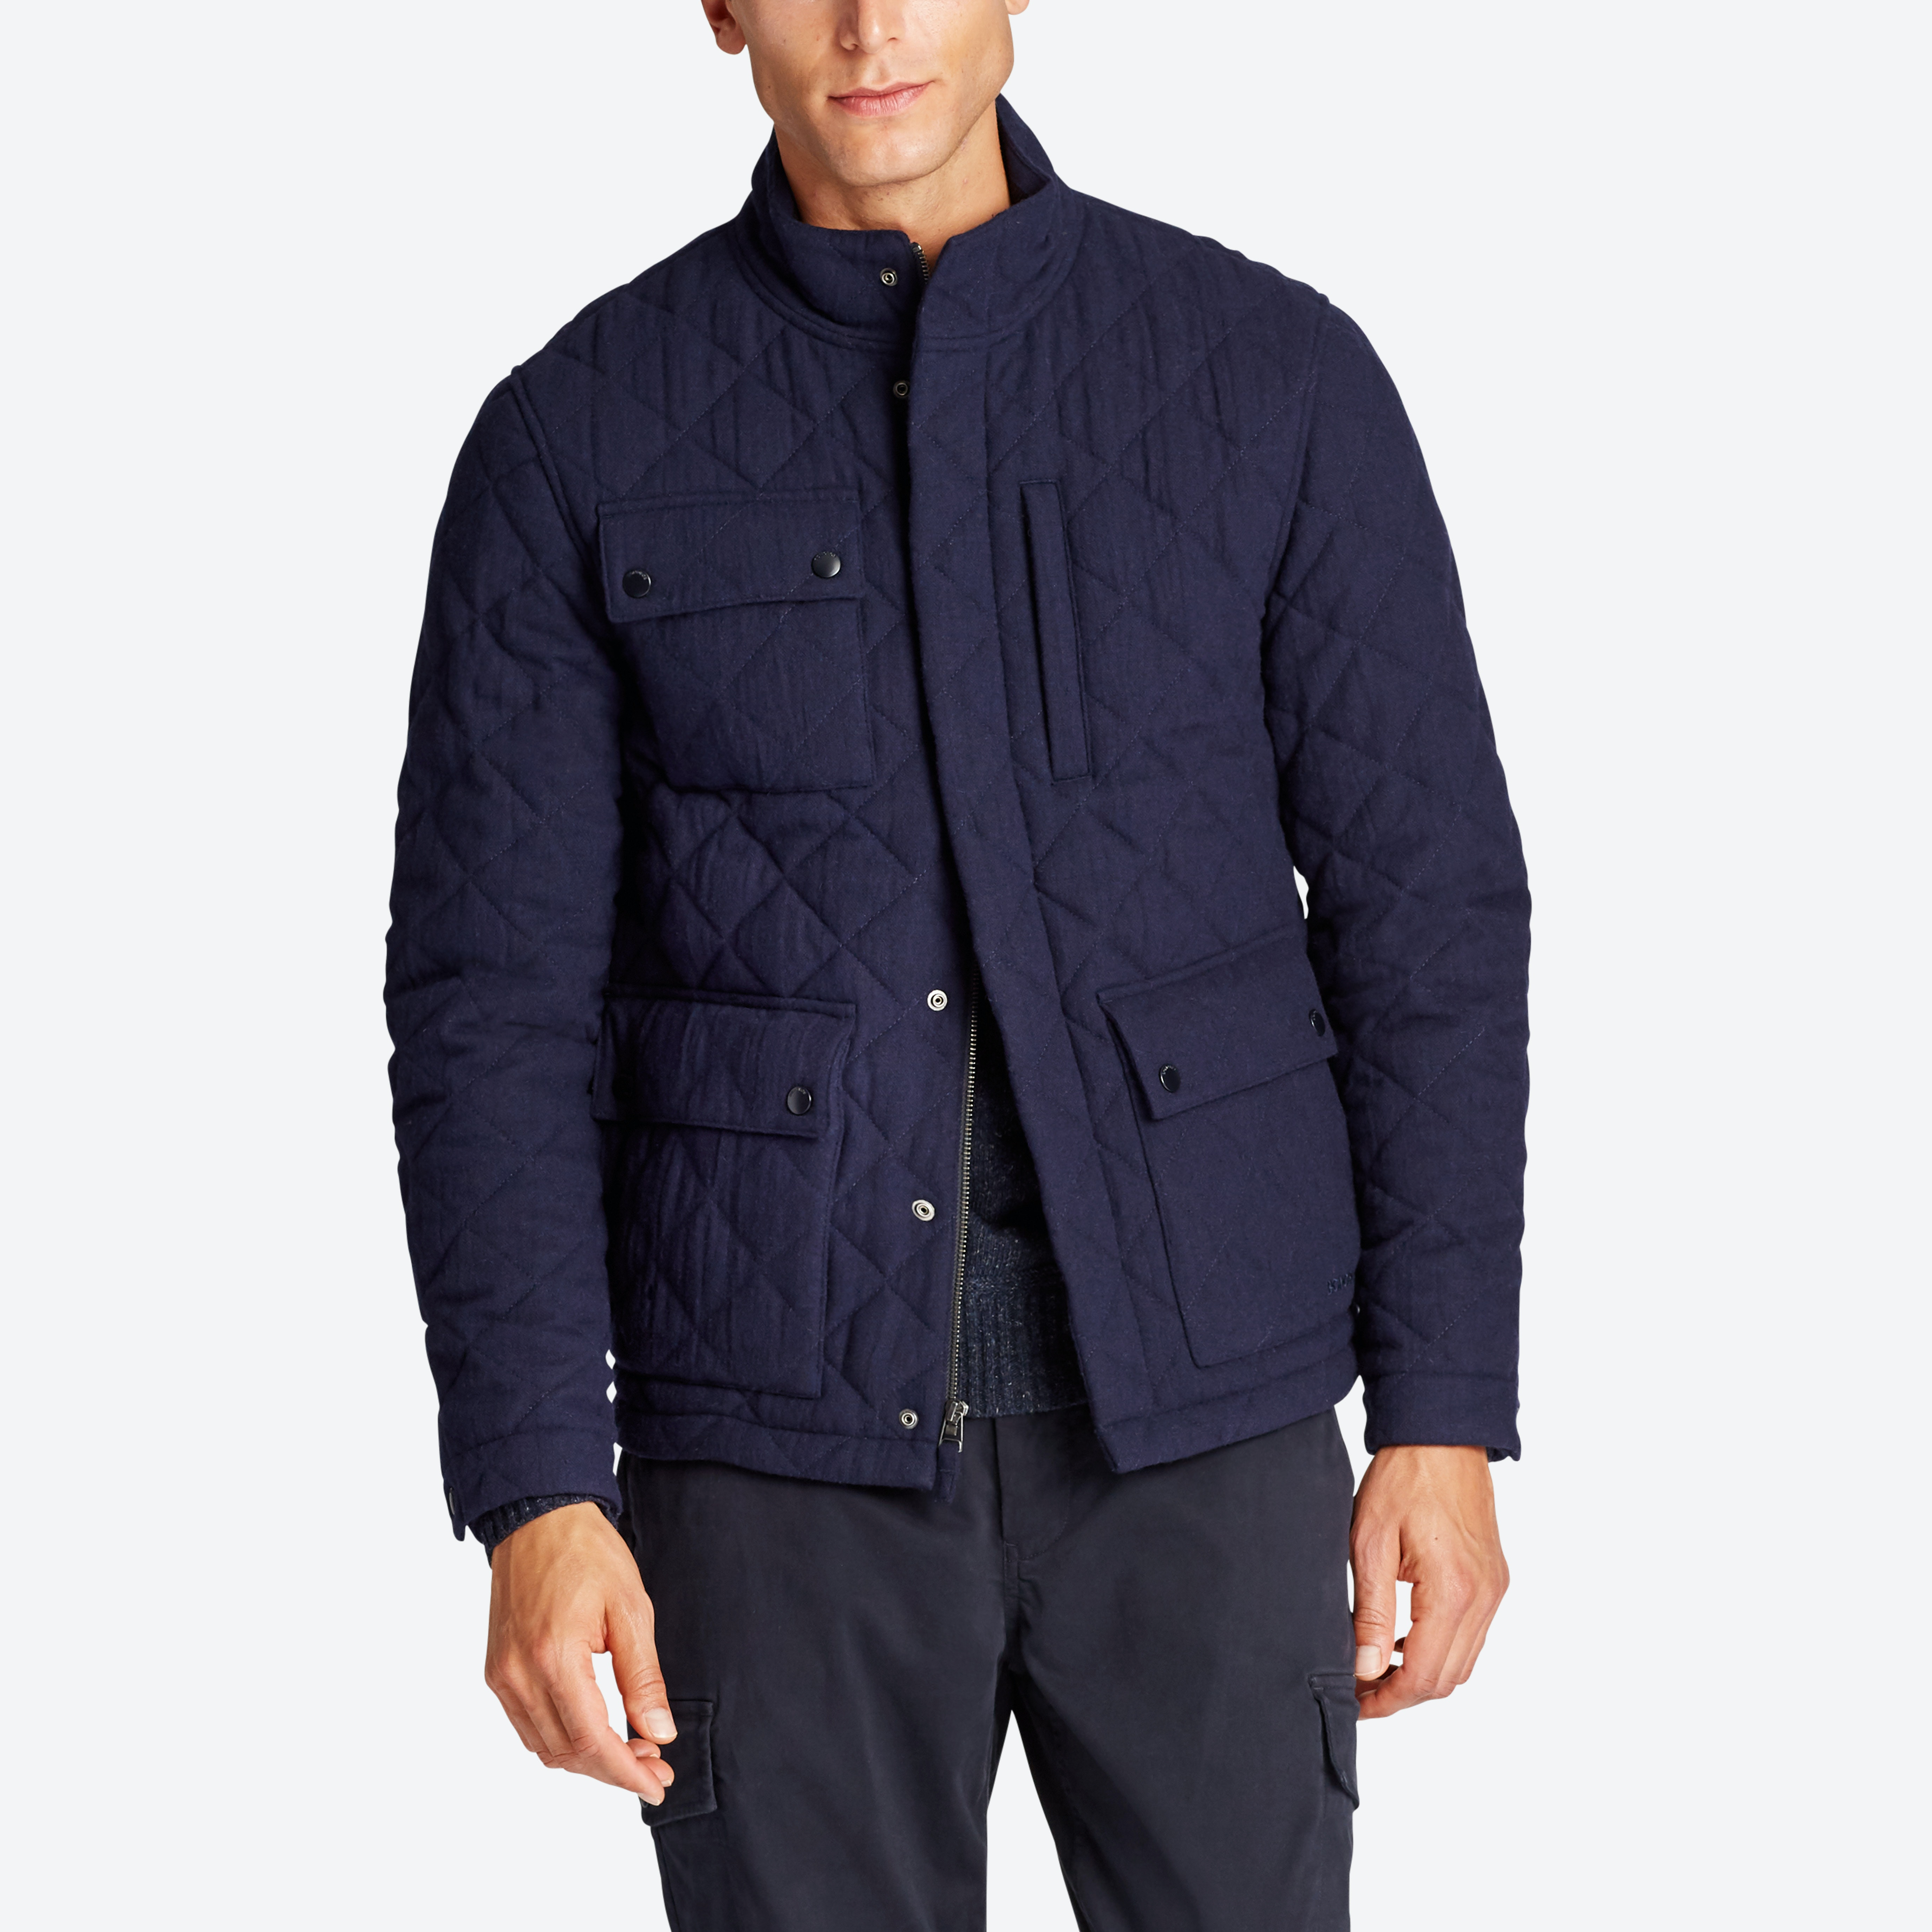 The Banff Quilted Jacket